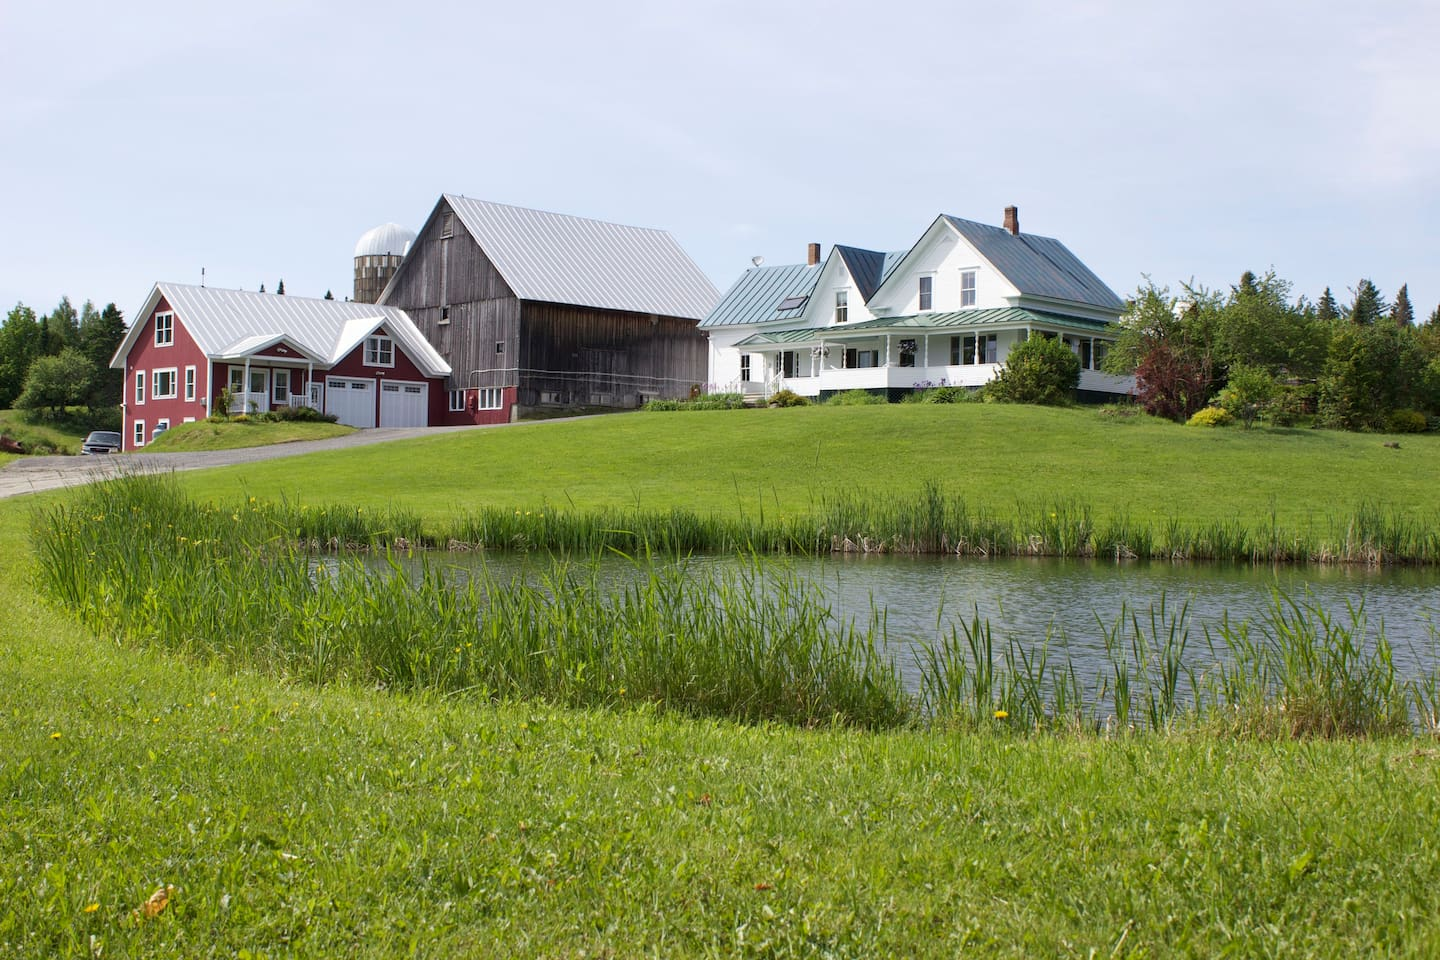 Enjoy fishing or swimming in the pond or looking for frogs with the little ones.